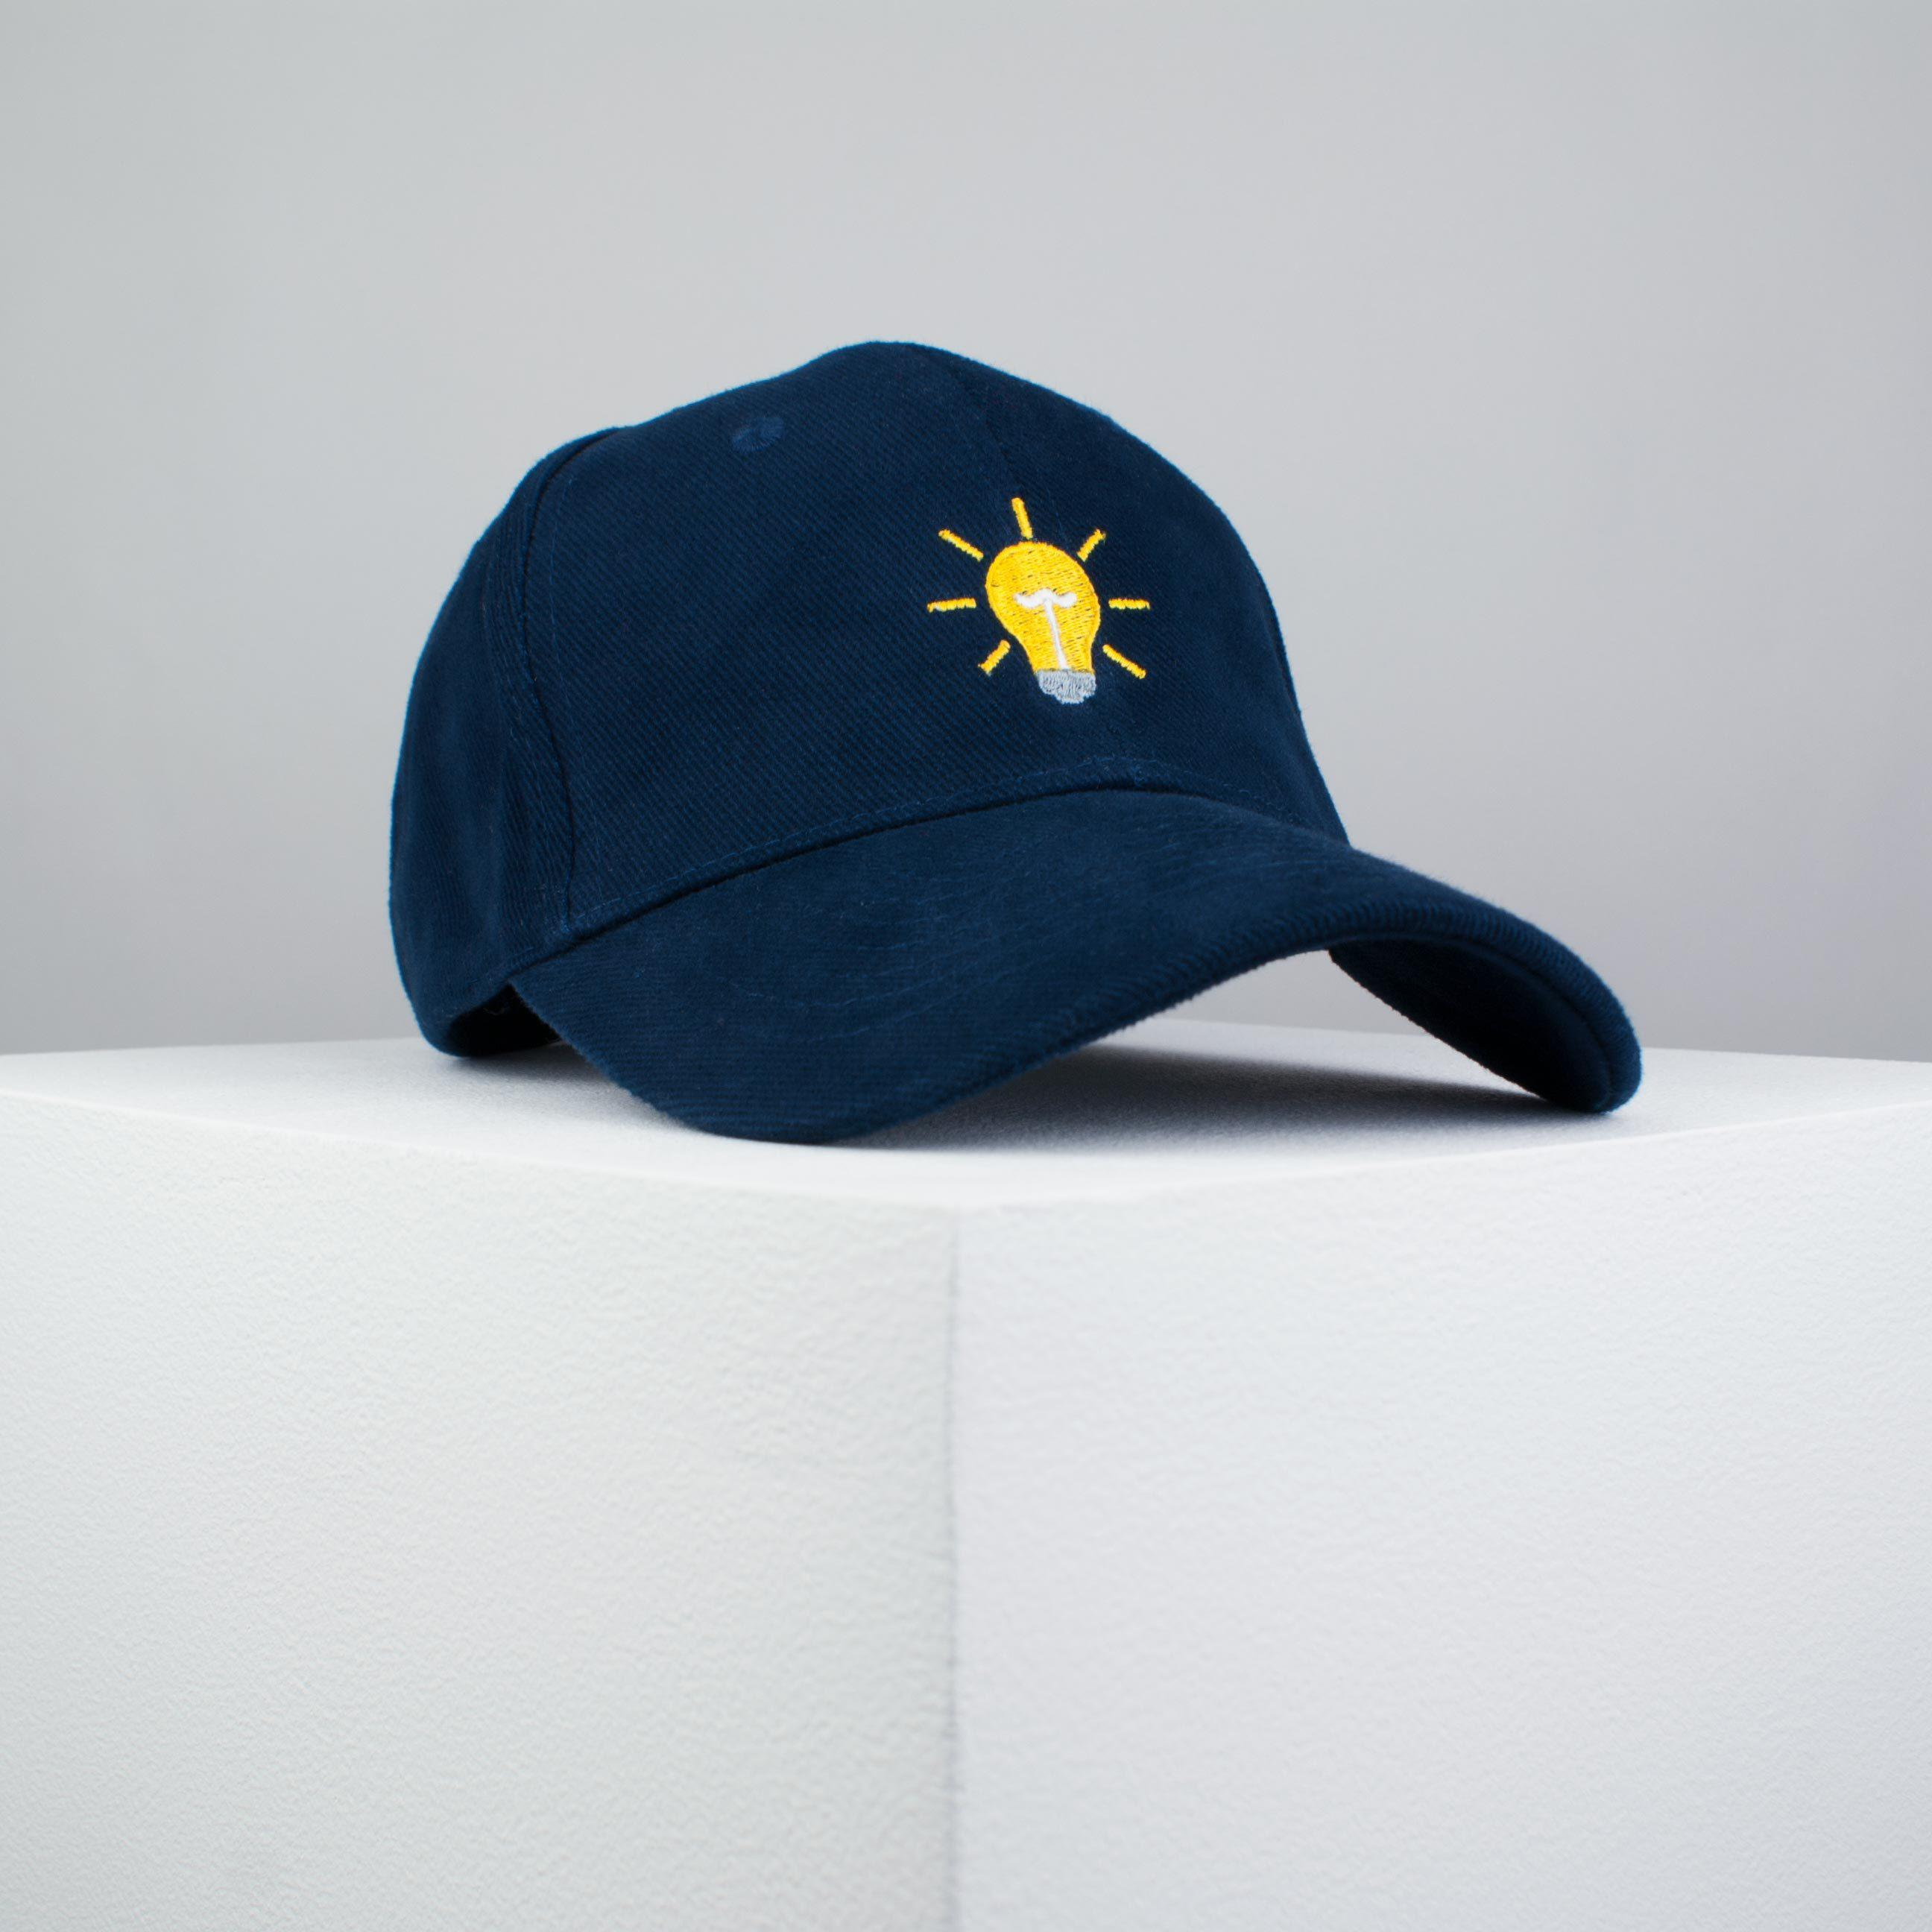 408aeef2a3 Light bulb embroidered baseball cap navy   light   patches   feminist    embroidery   patch ...